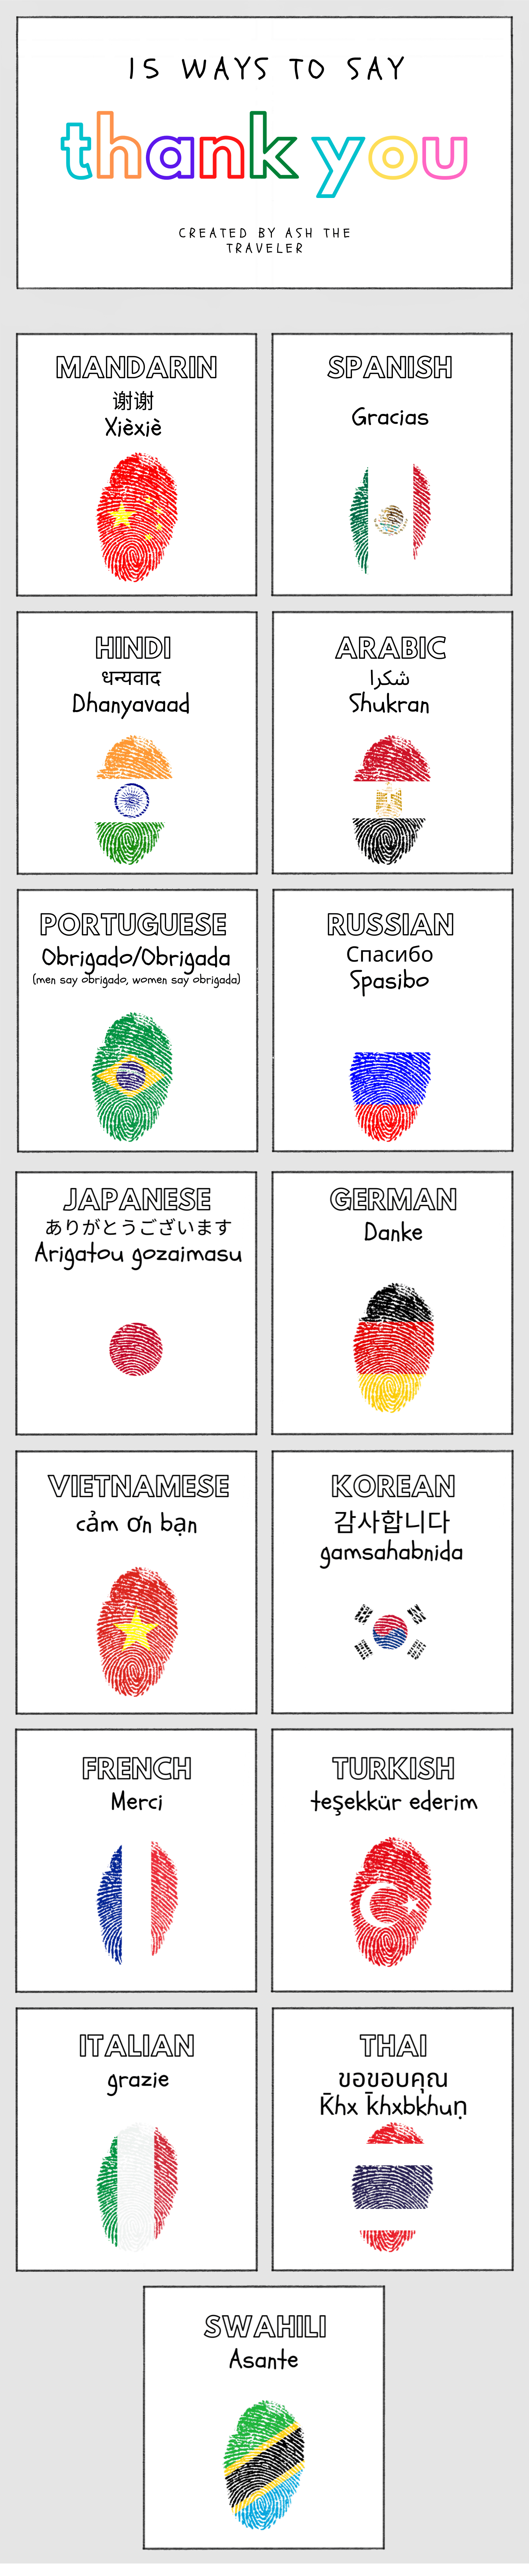 how to say hello in different langiages infographic